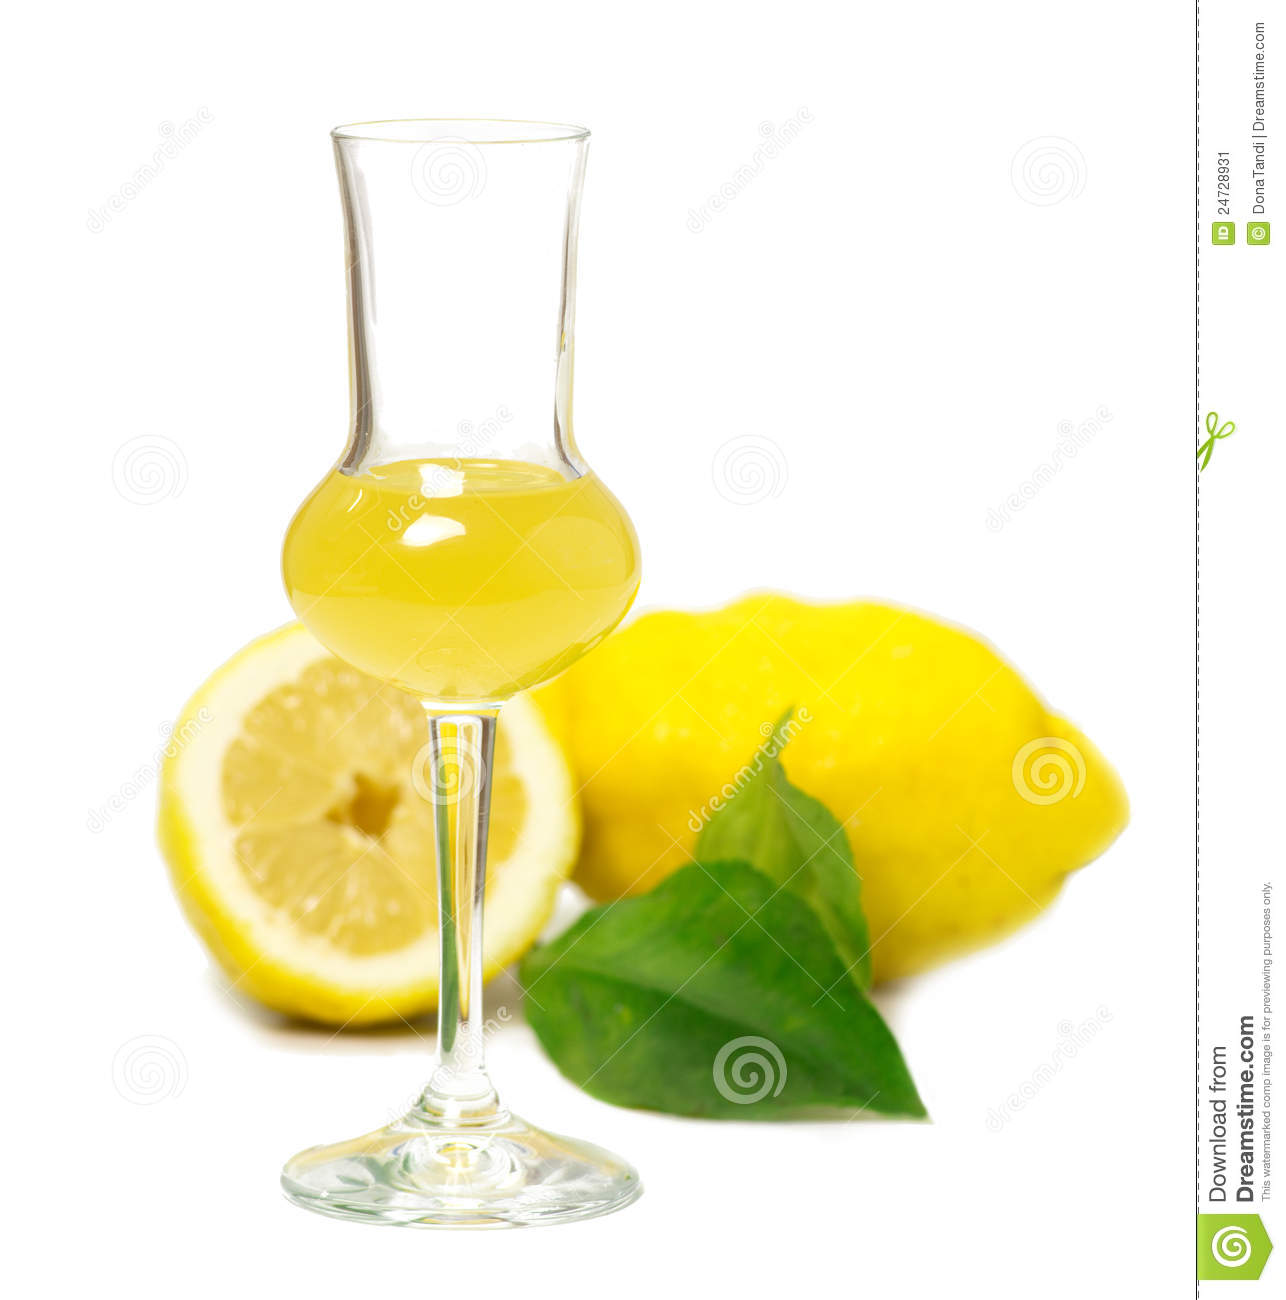 liqueur en verre de limoncello image stock image 24728931. Black Bedroom Furniture Sets. Home Design Ideas